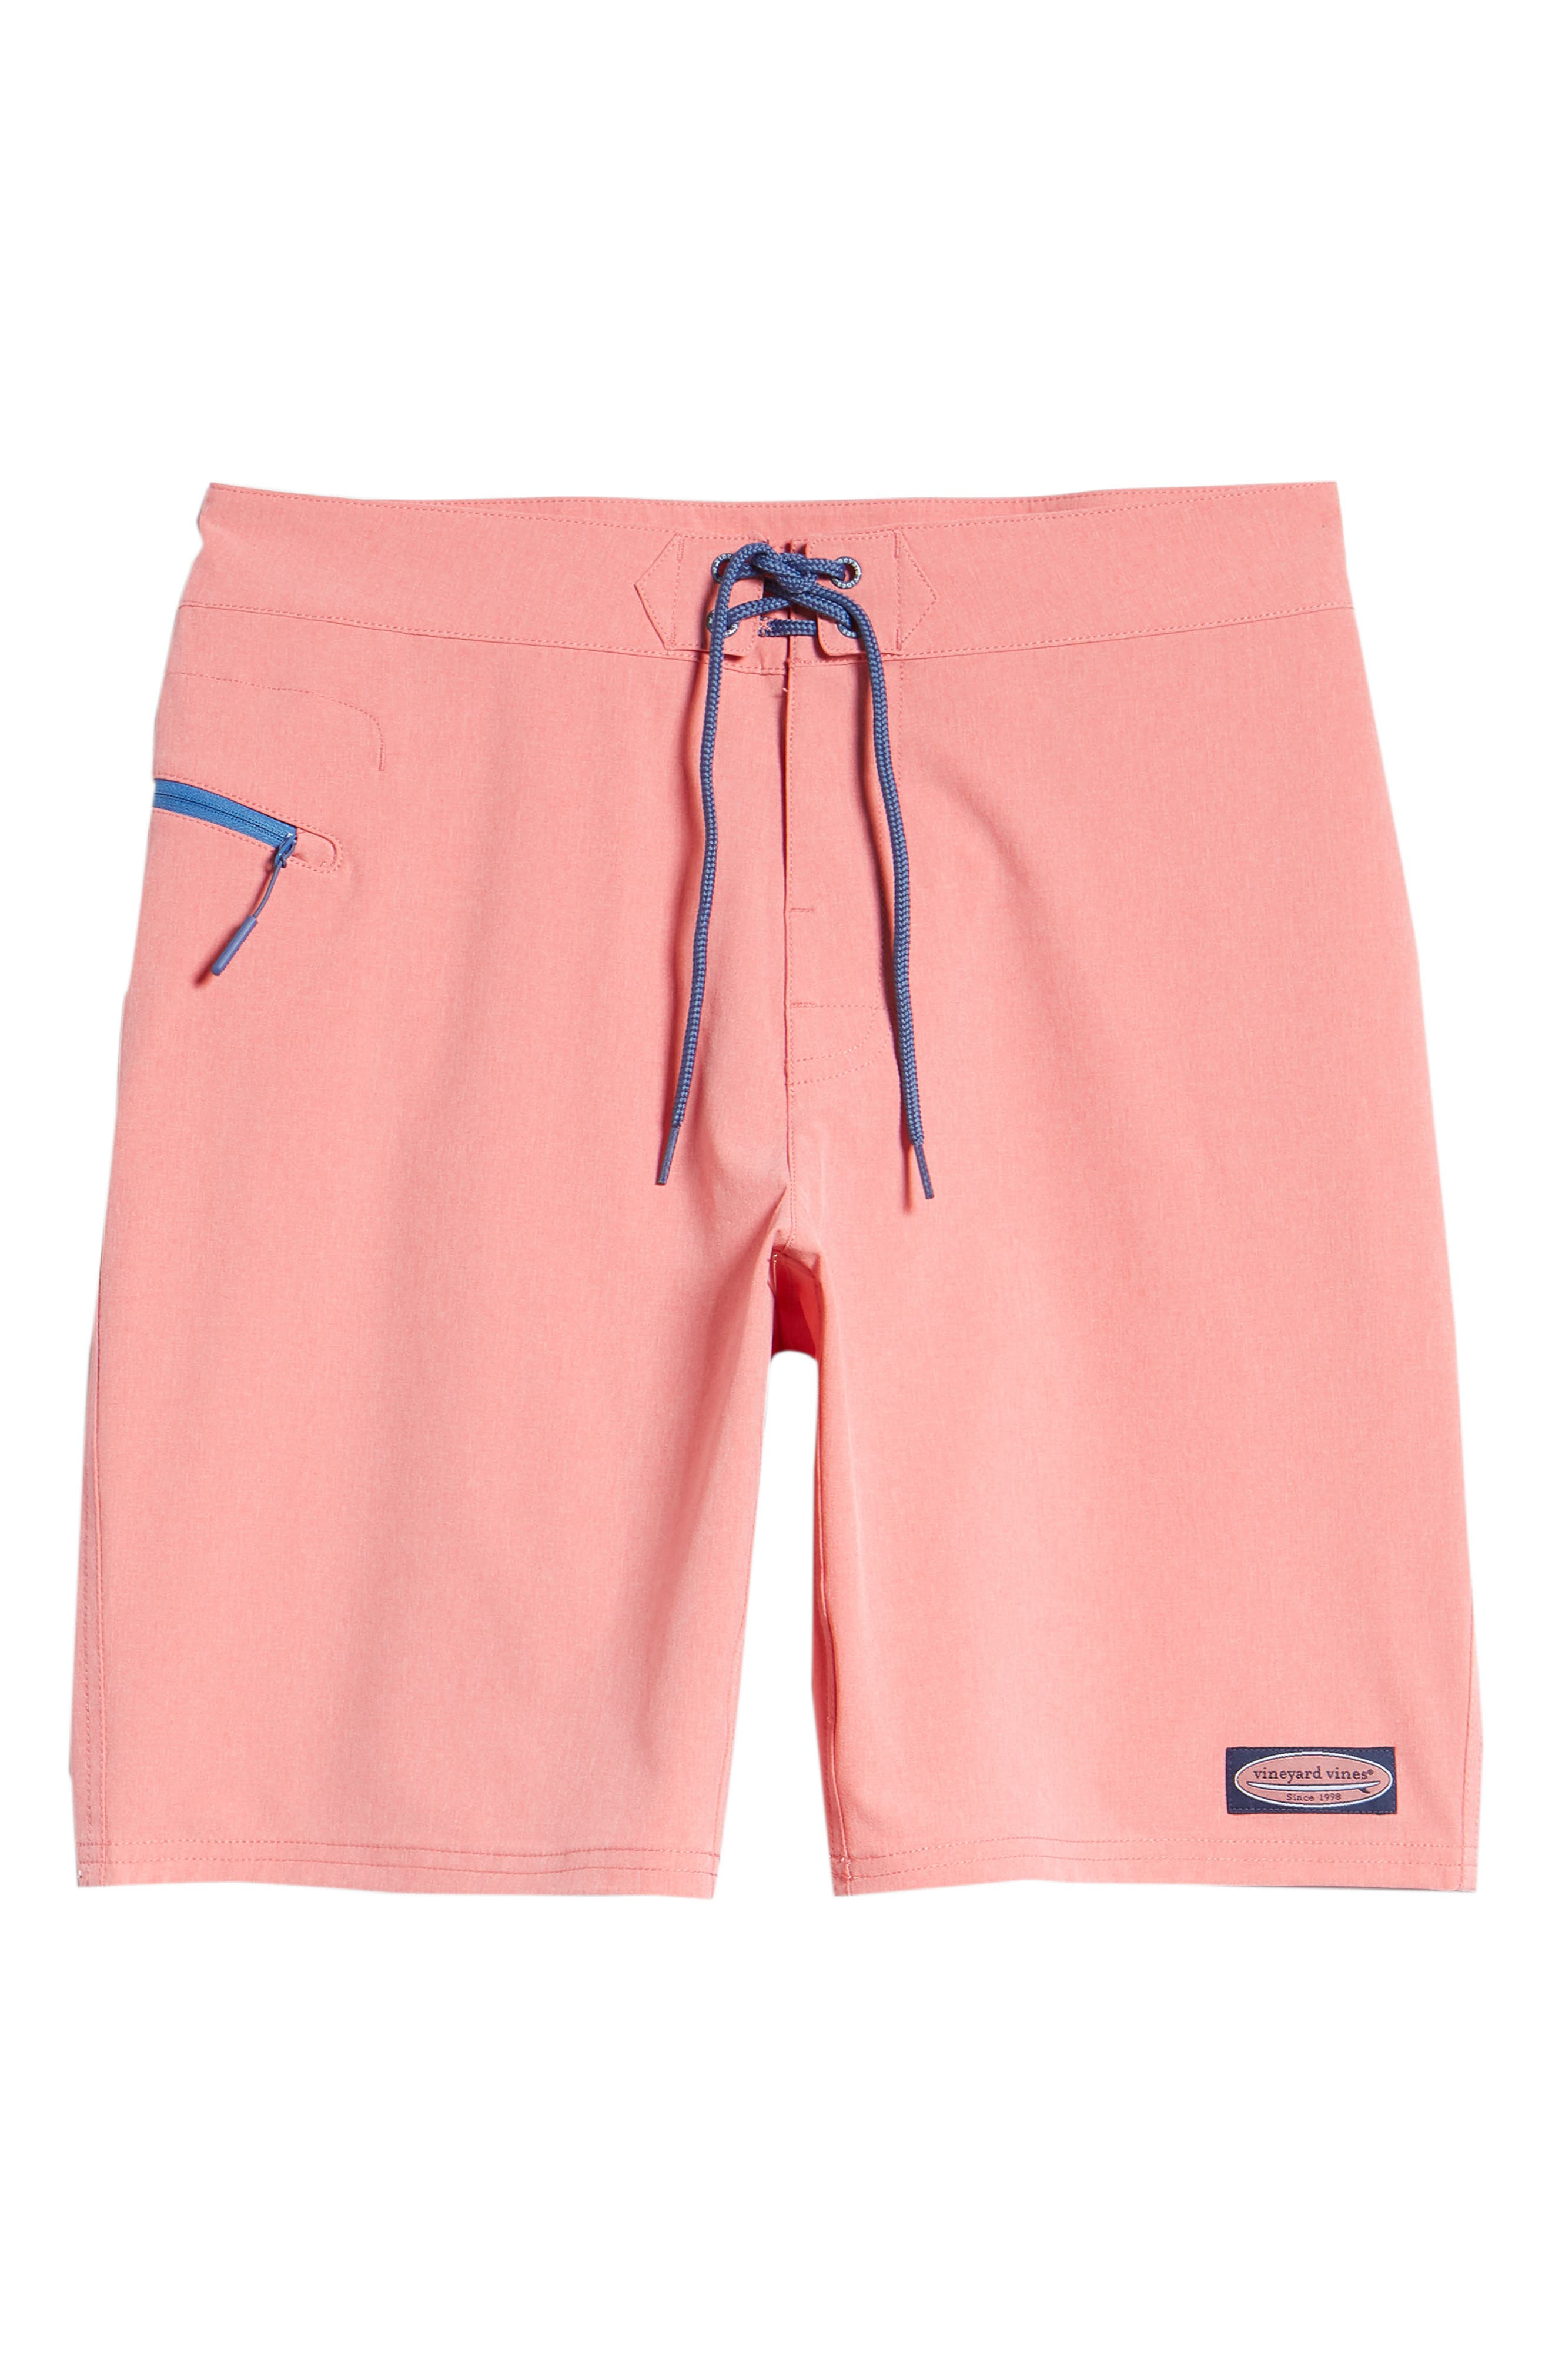 Heather Stretch Board Shorts,                             Alternate thumbnail 6, color,                             LOBSTER REEF